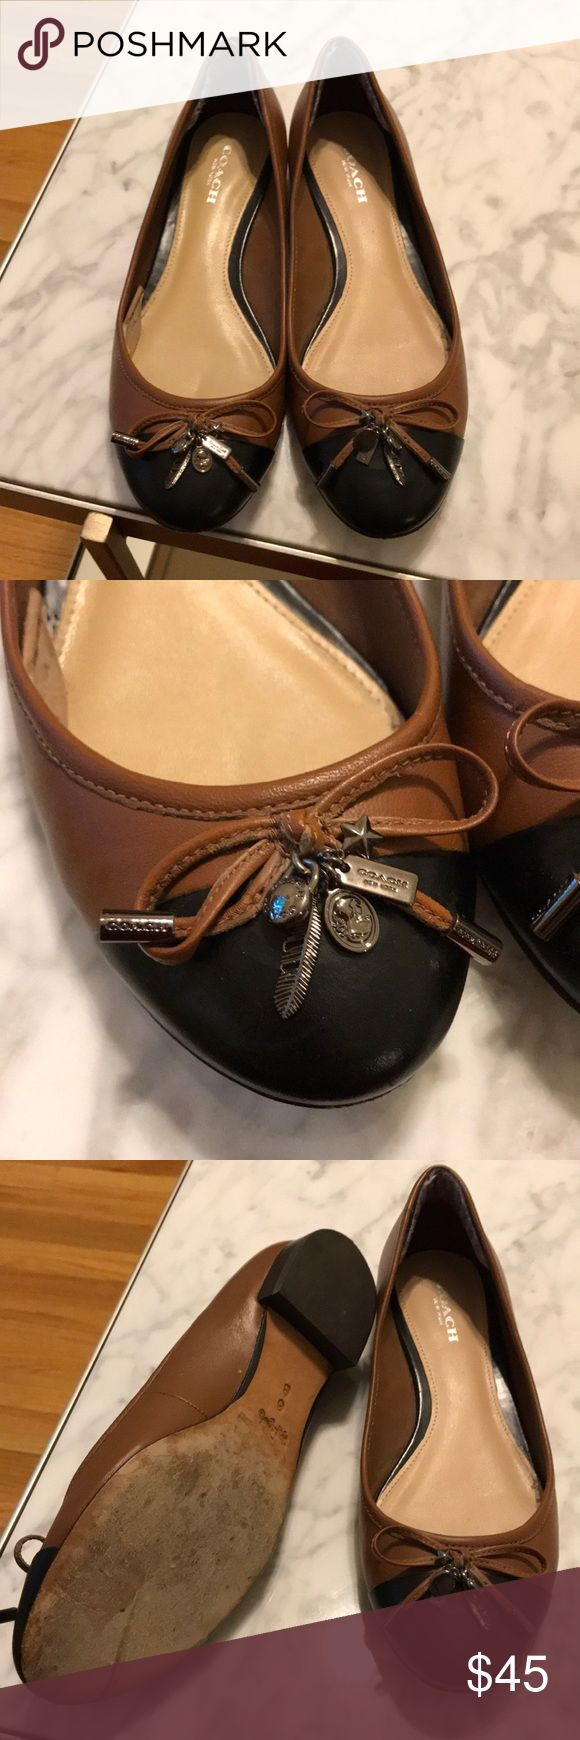 Coach flats Brown and black coach flats. In great condition! Size 6 Coach Shoes Flats & Loafers